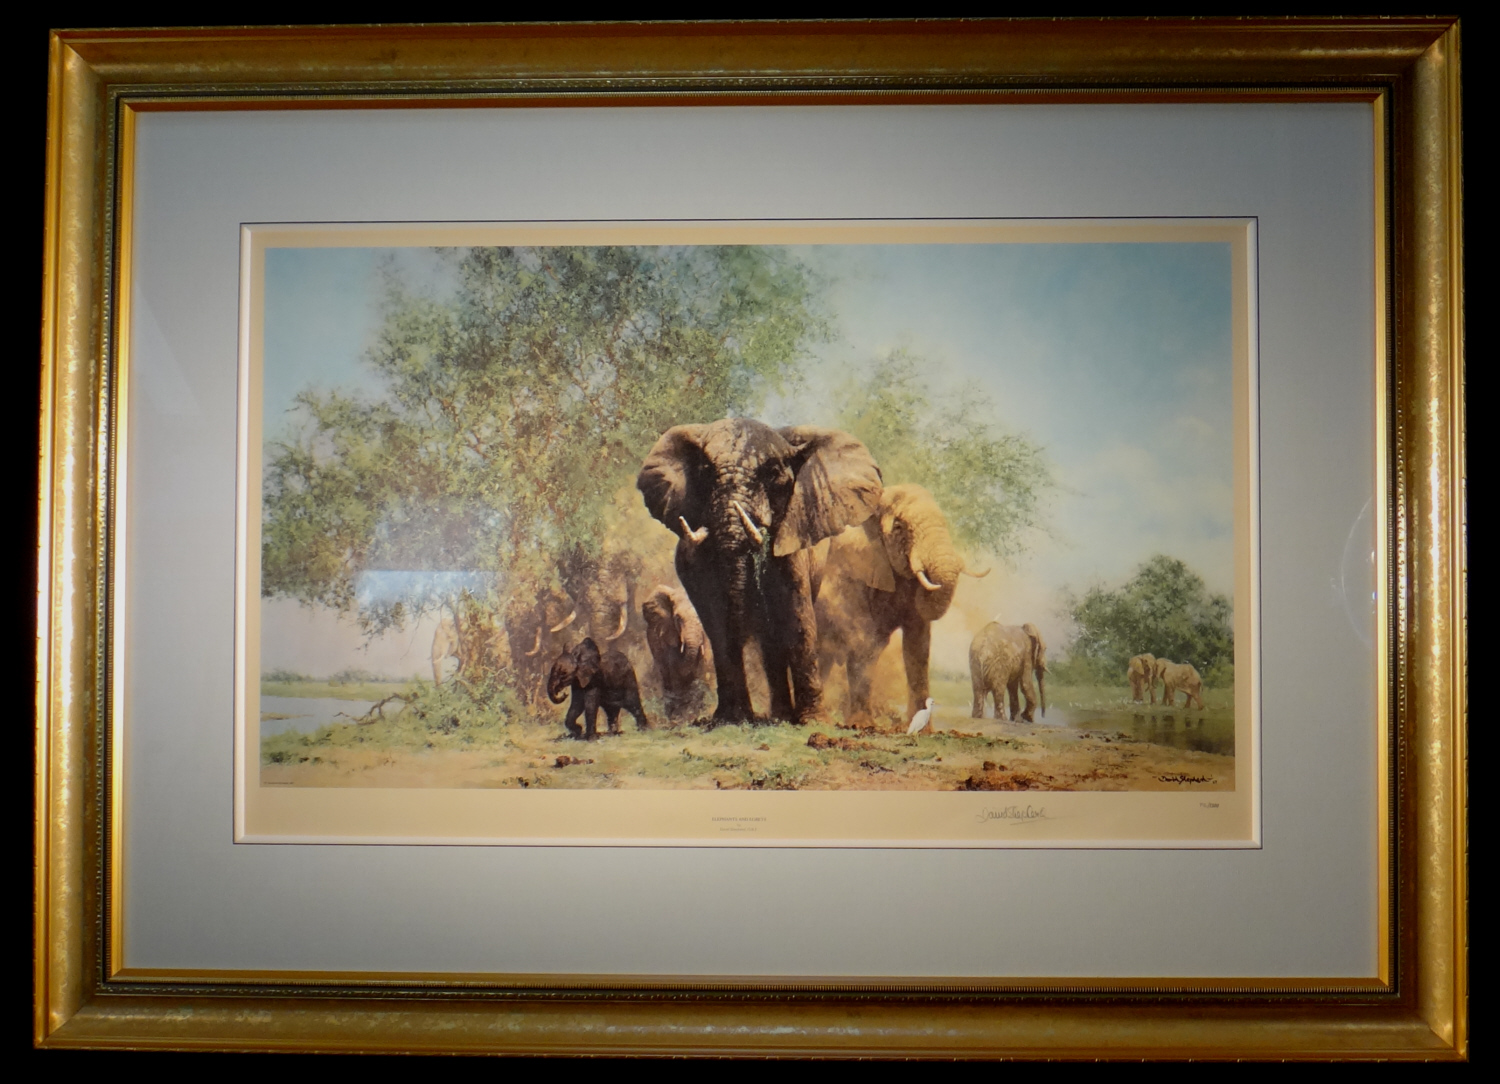 david shepherd, Elephants and Egrets, signed limited edition print